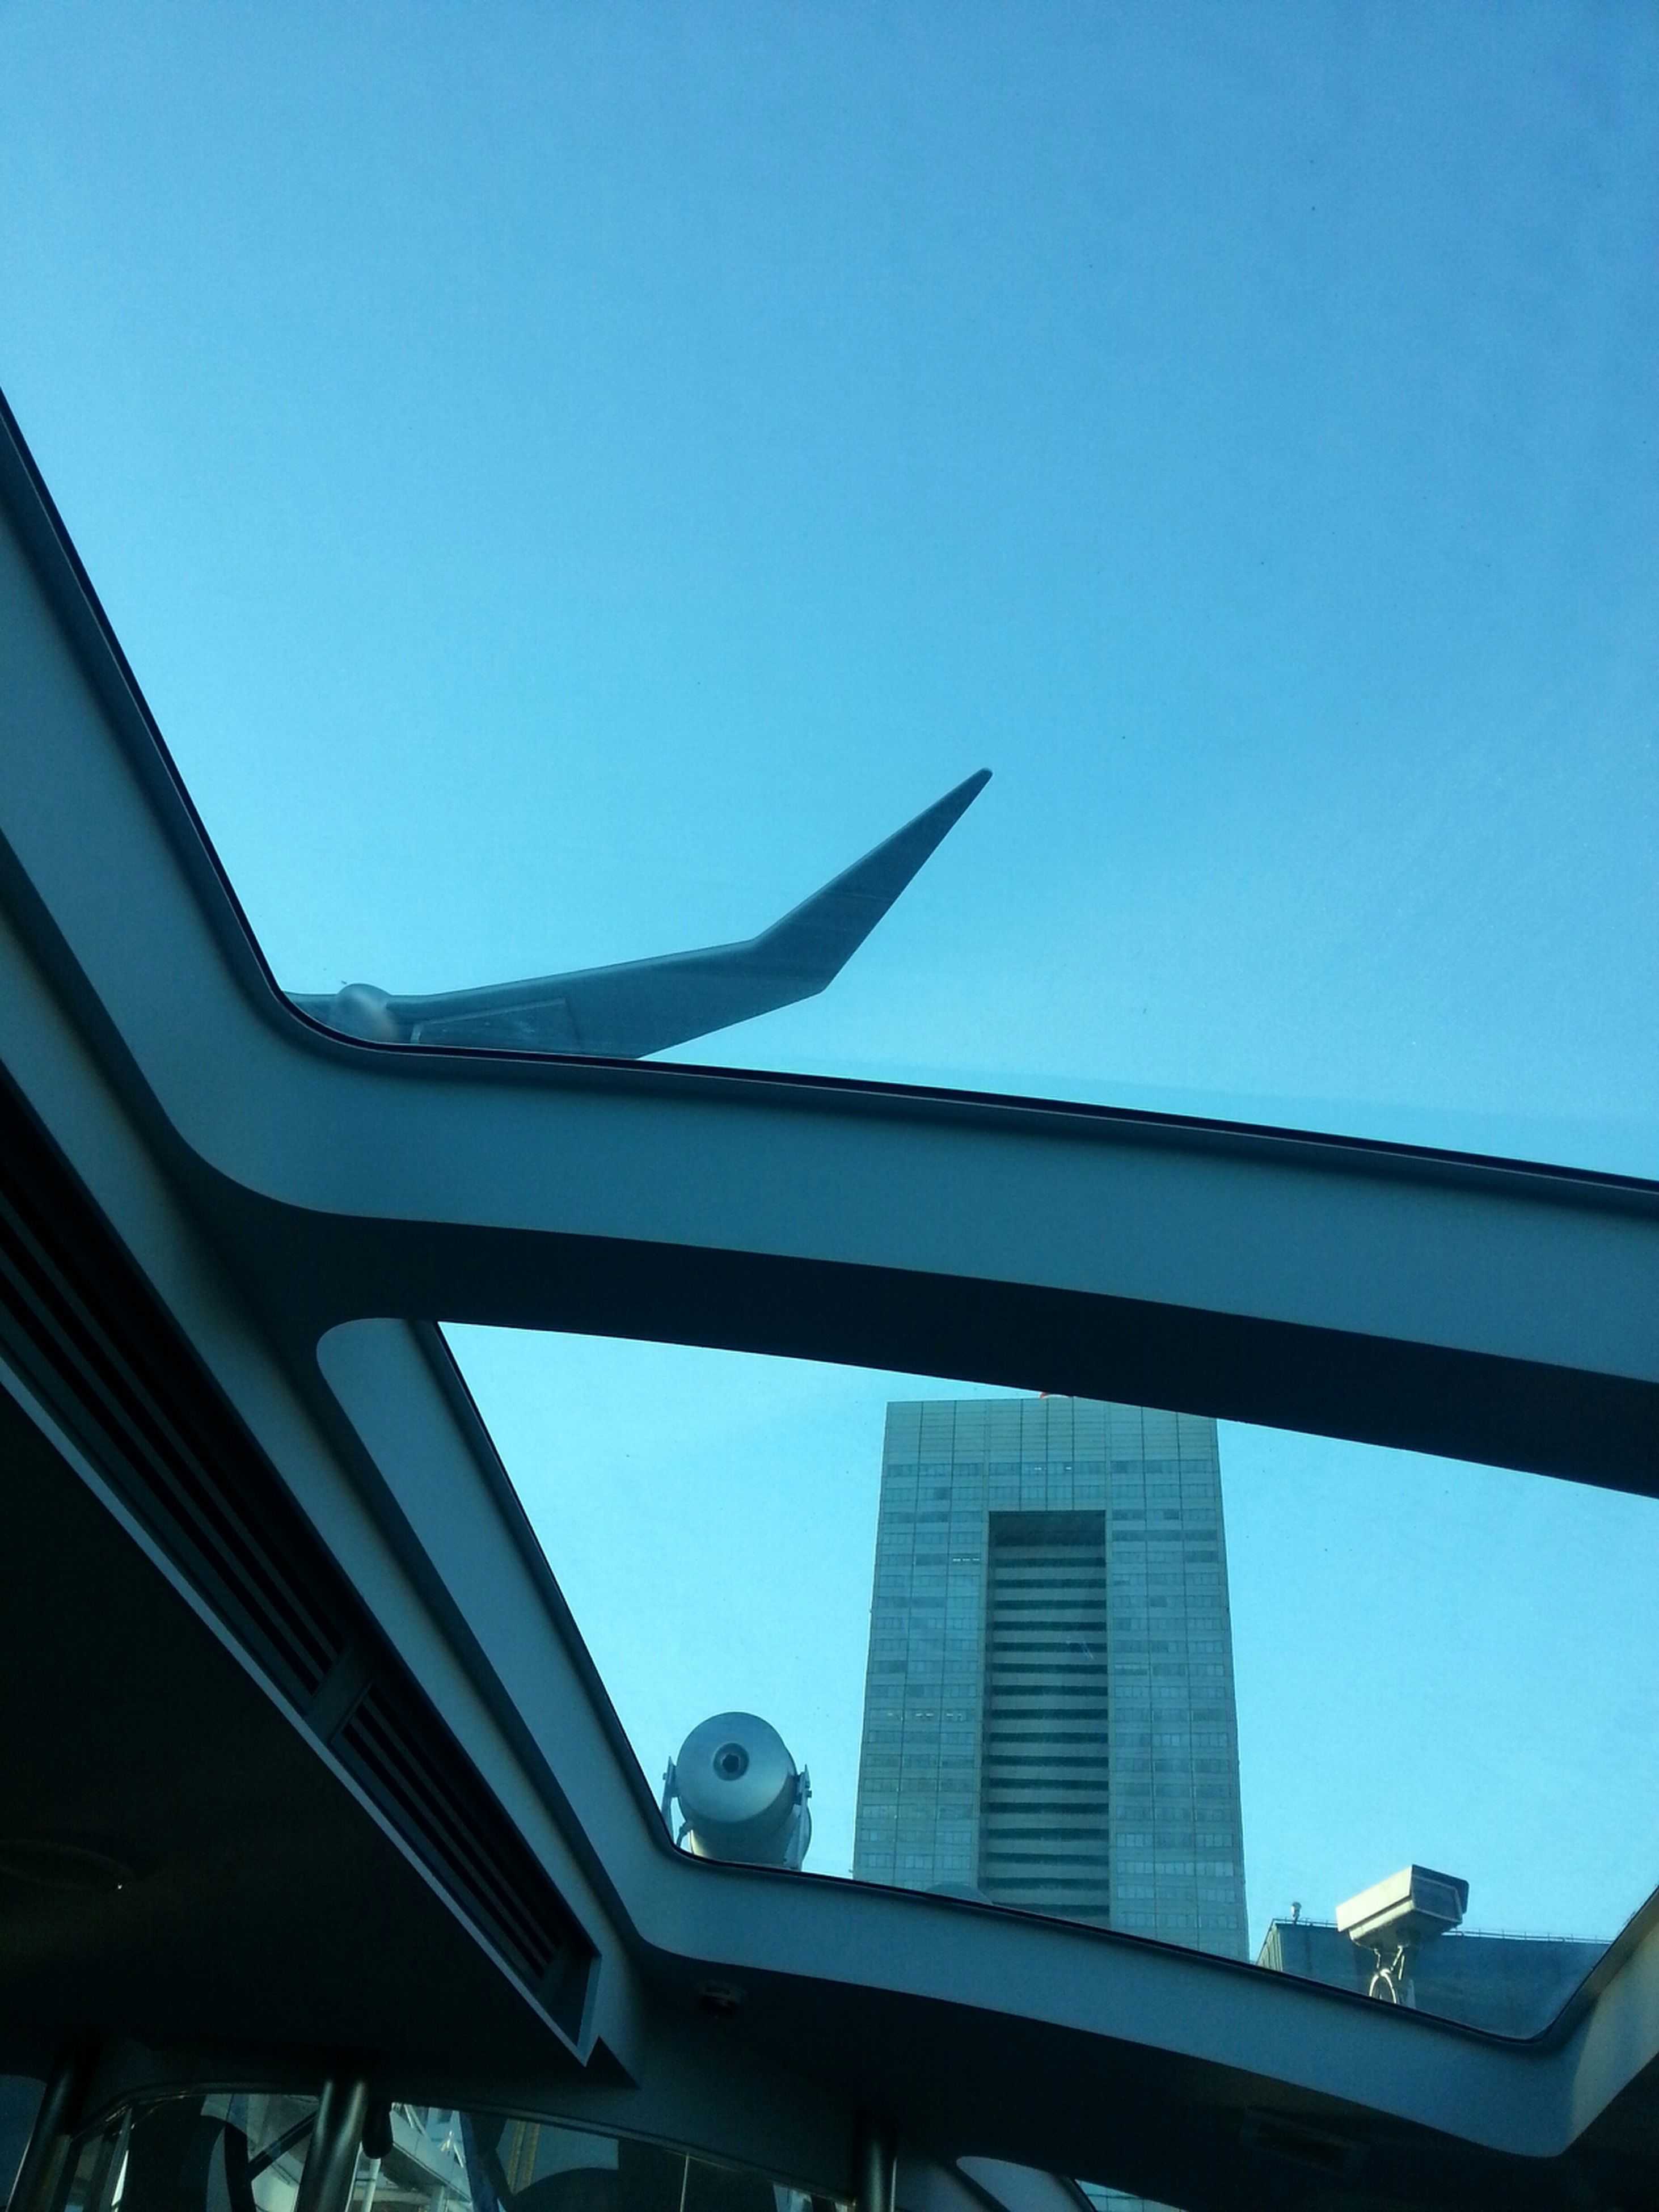 low angle view, architecture, built structure, clear sky, building exterior, blue, flying, bird, animal themes, animals in the wild, window, wildlife, sky, one animal, airplane, copy space, glass - material, building, day, mid-air